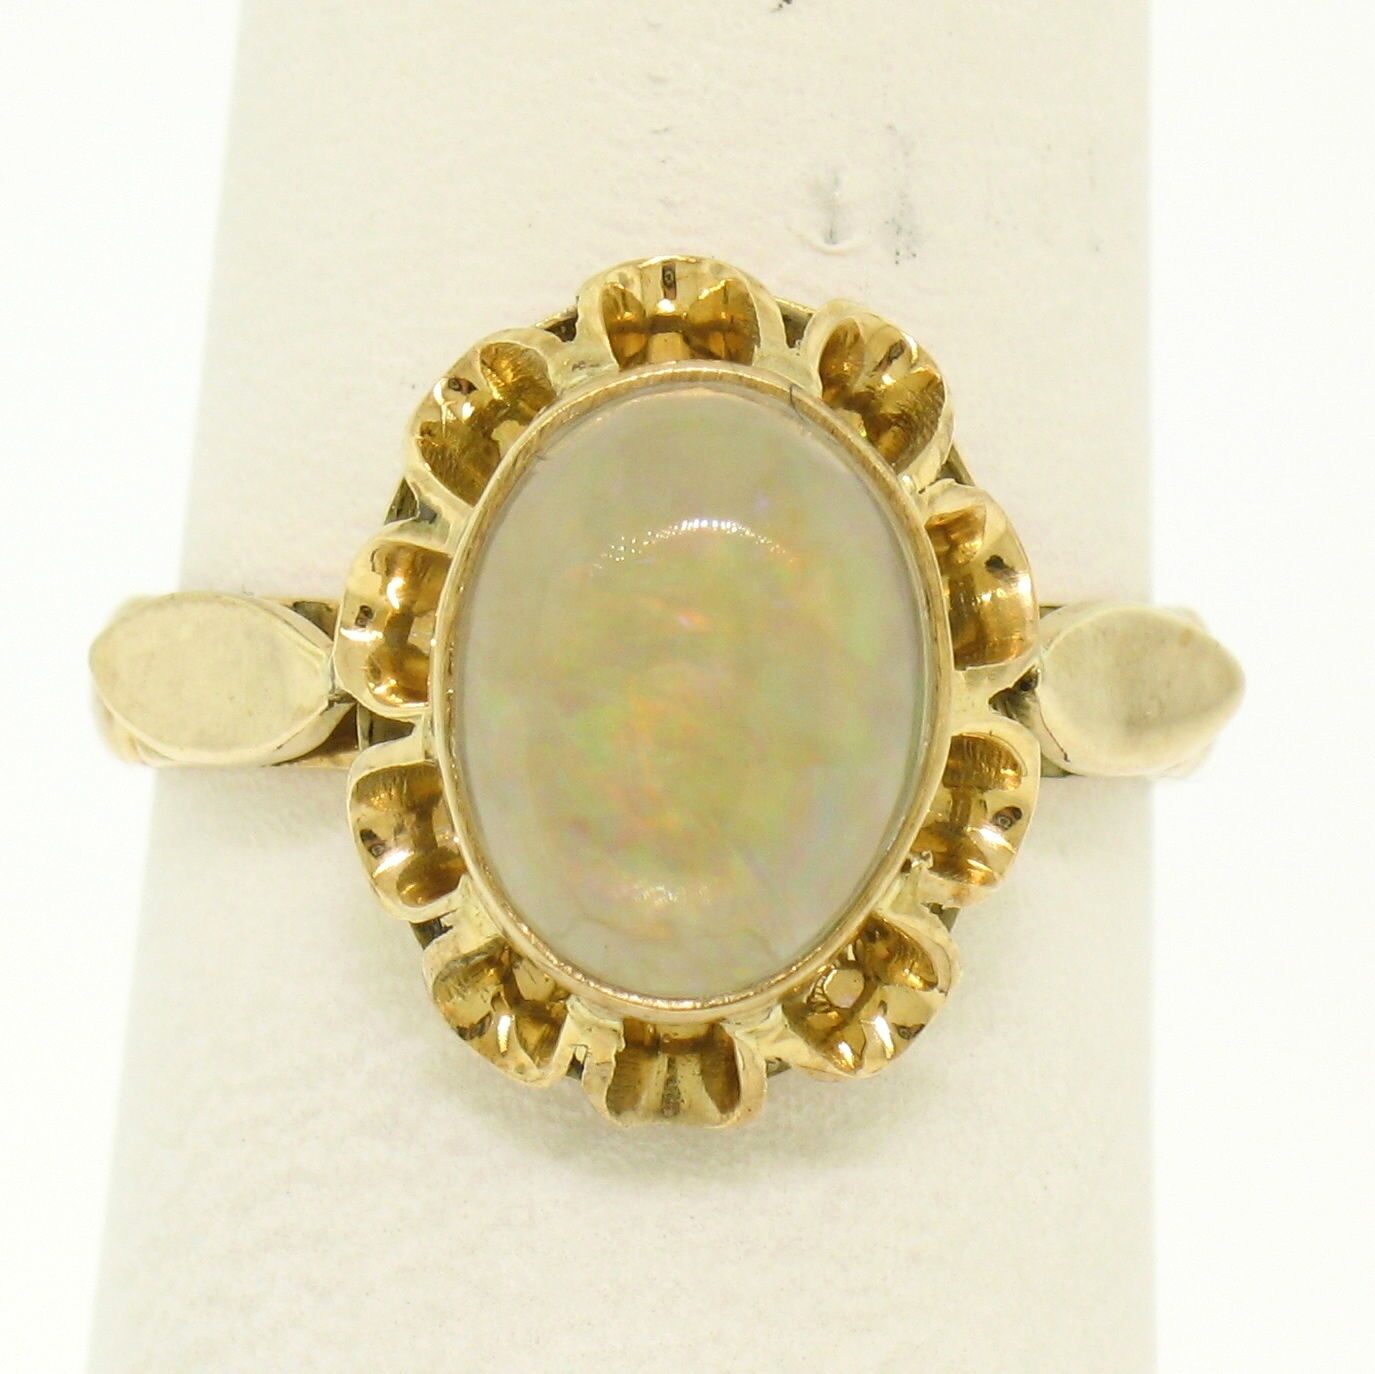 Estate Vintage 14k Yellow gold 1.50ct Oval Cabochon Opal Bezel Solitaire Ring